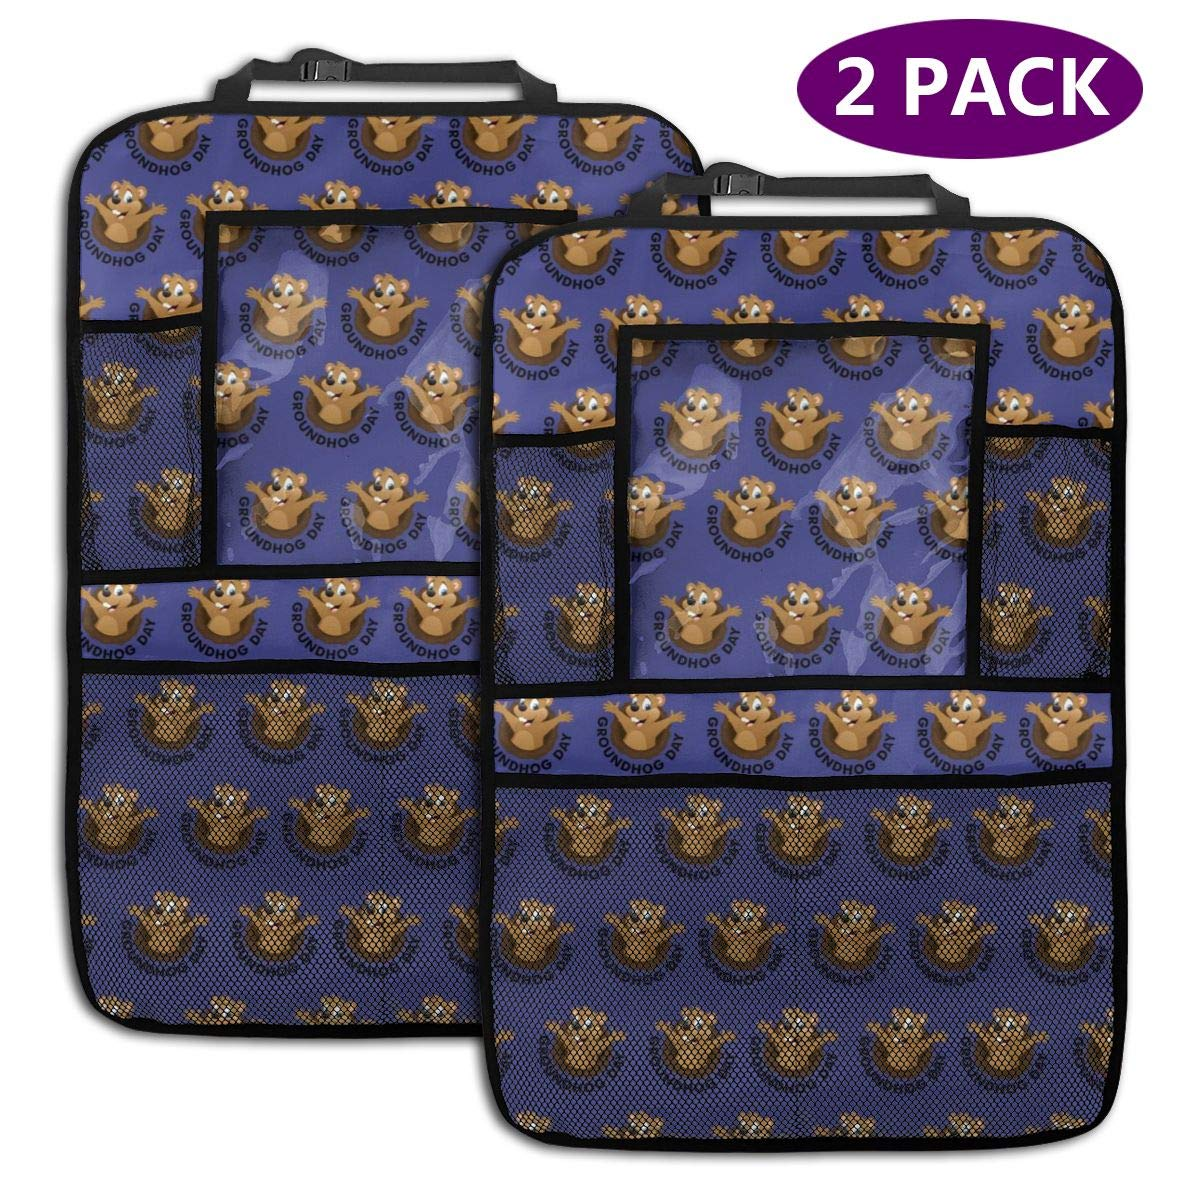 QF6FEICHAN Groundhog Day Pattern Car Seat Back Protectors with Storage Pockets Kick Mats Accessories for Kids and Toddlers by QF6FEICHAN